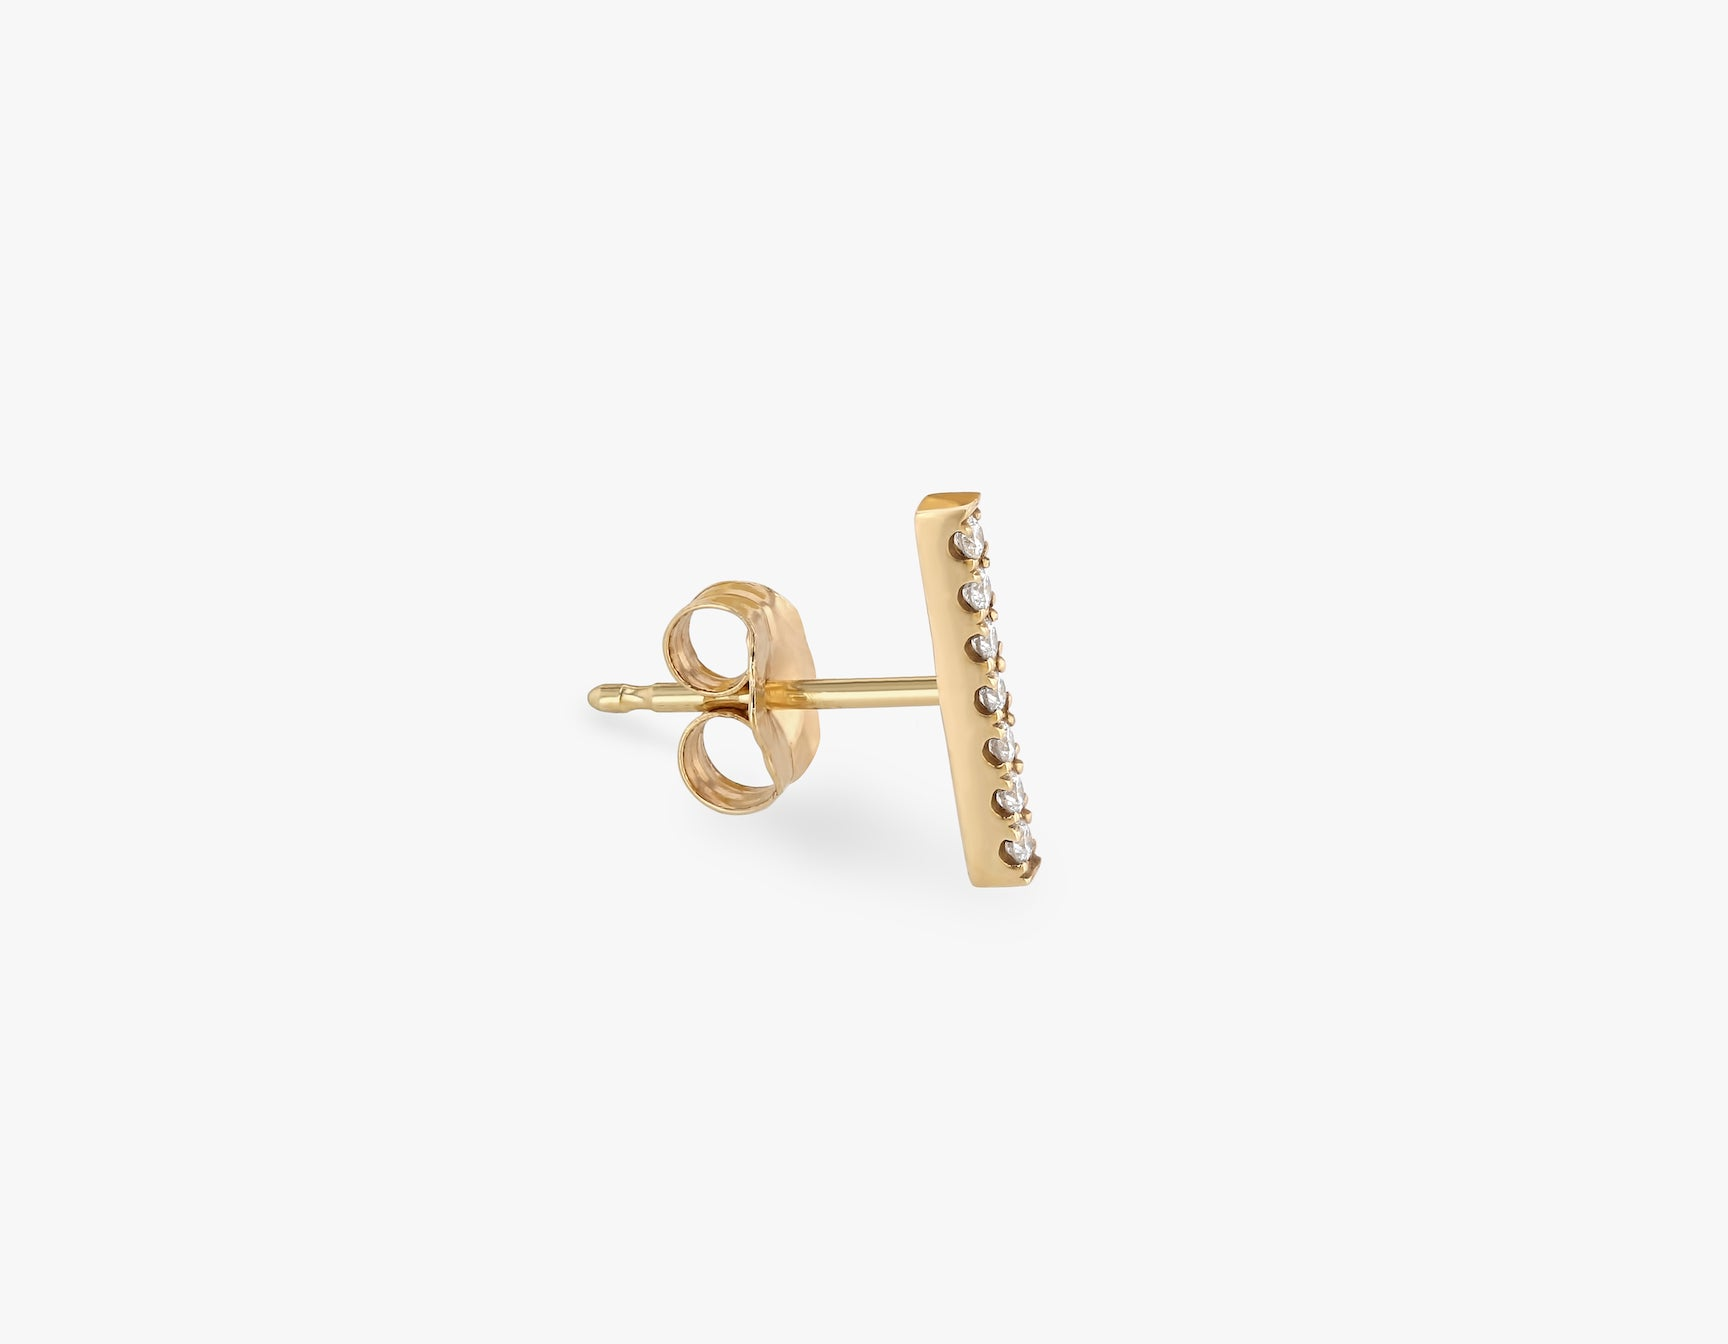 Vrai solid gold Pave Line Stud, 14K Yellow Gold